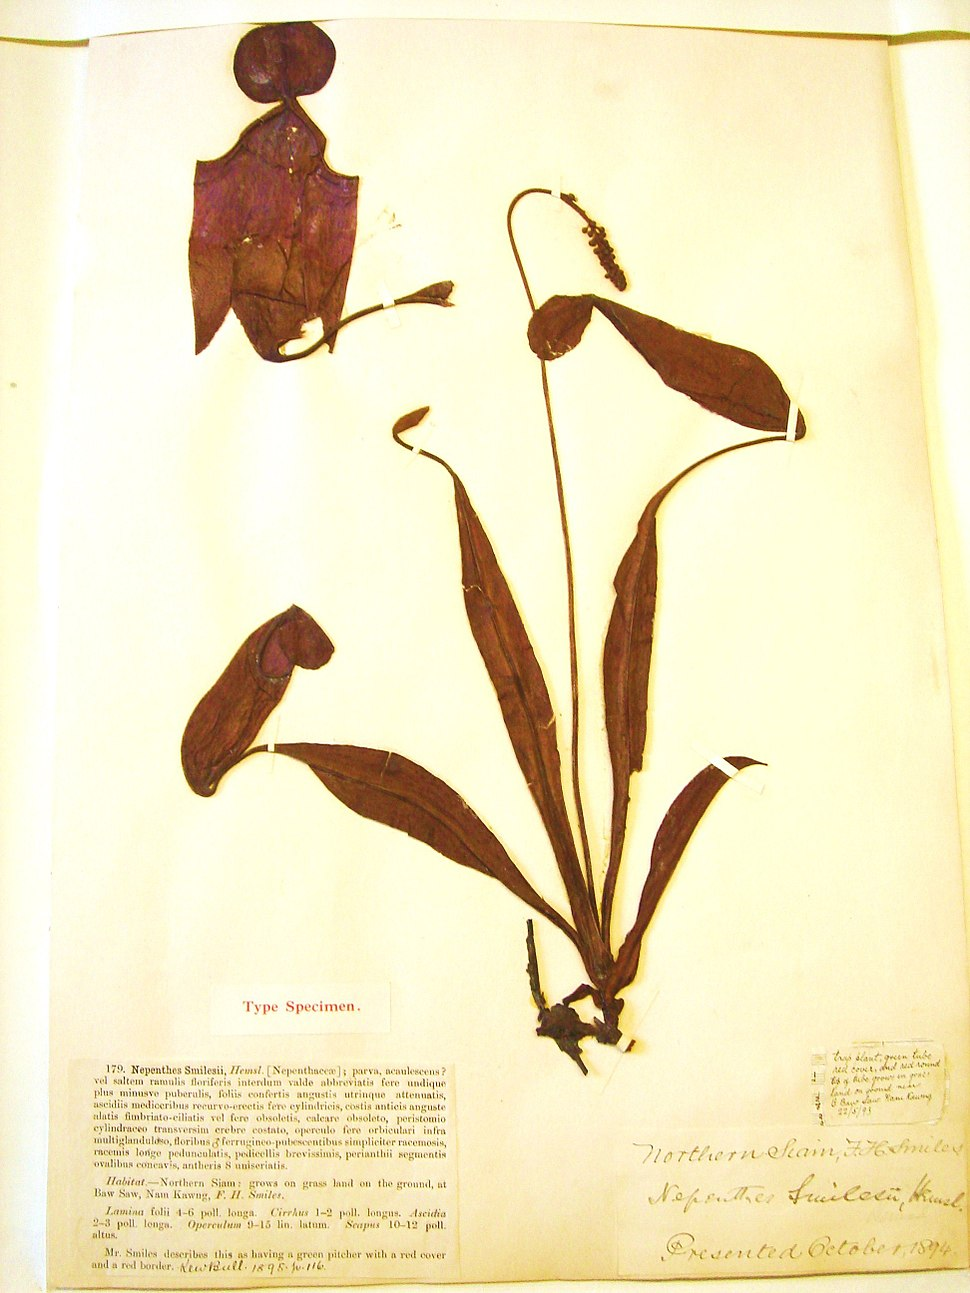 Nepenthes smilesii type specimen